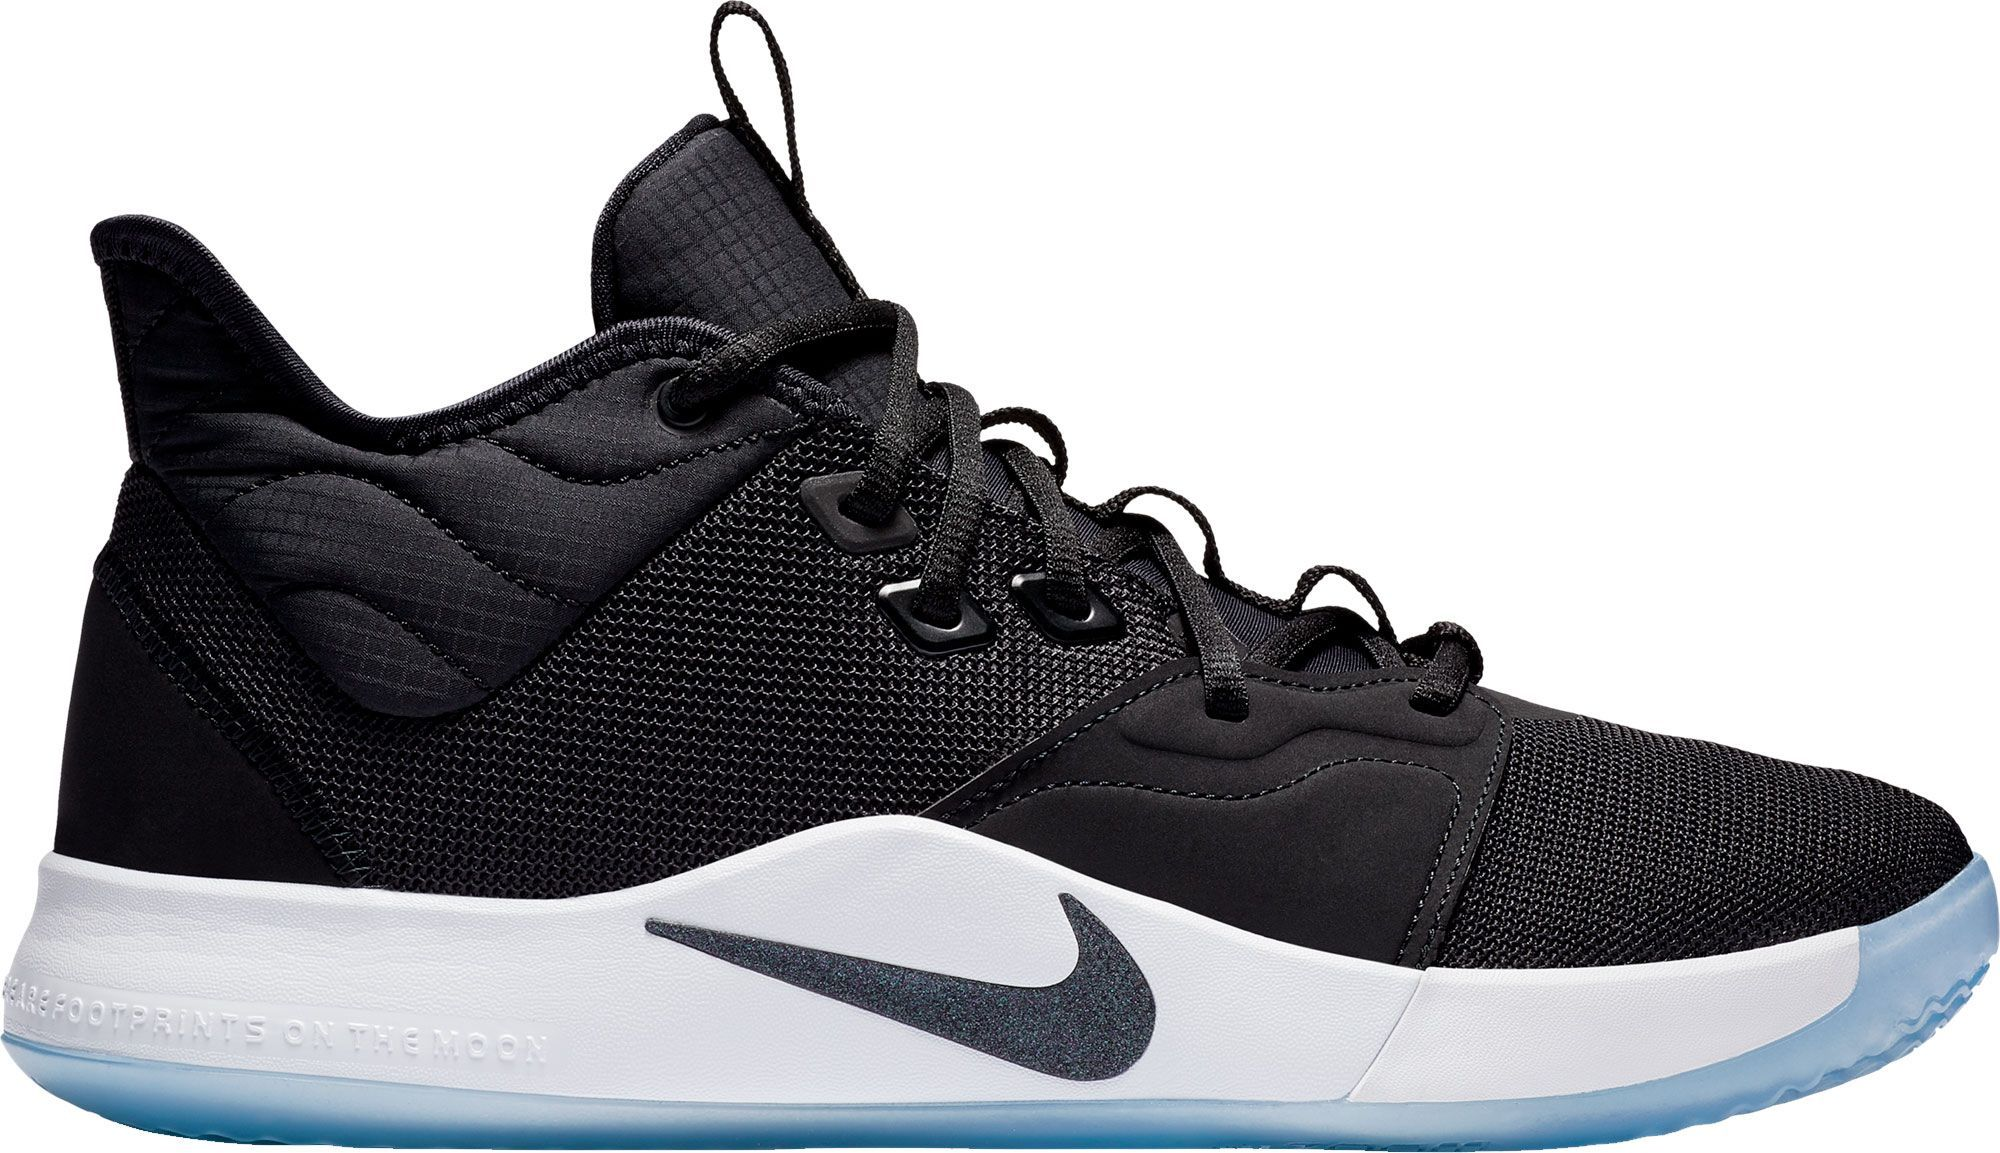 9a25edf723 Nike Men's PG 3 Basketball Shoes, Size: 7.5, Black in 2019 ...